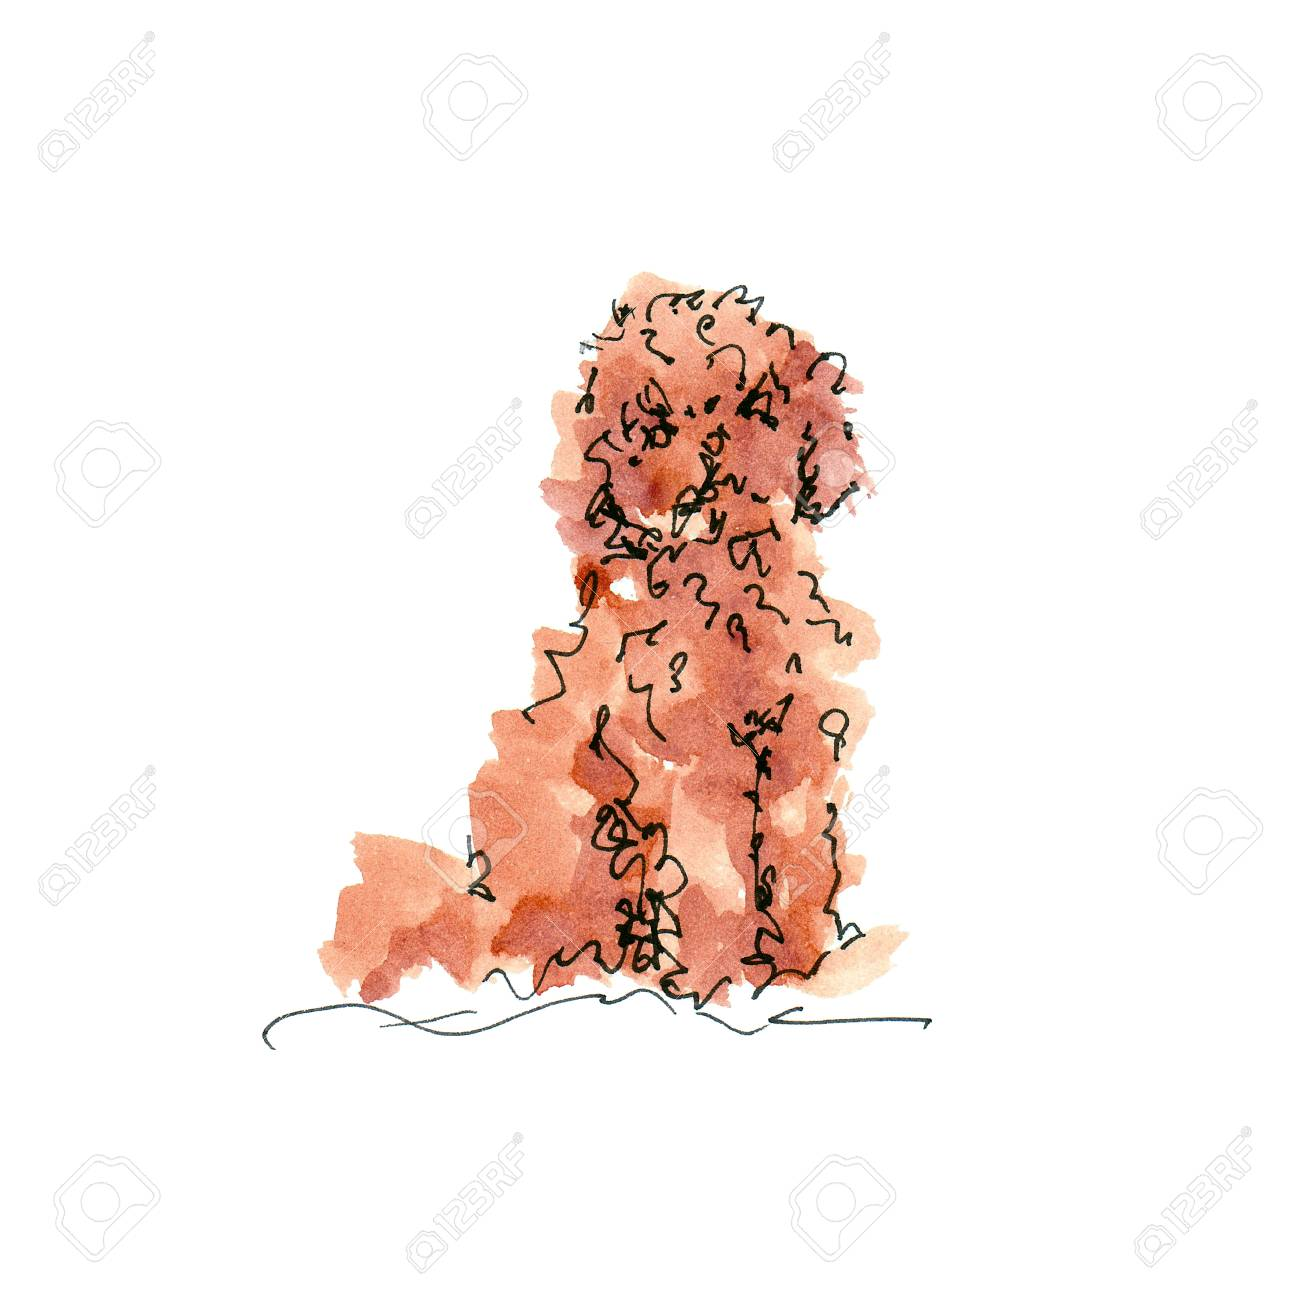 Watercolor illustration of Toy Poodle dog sketch isolated on white - 109991147